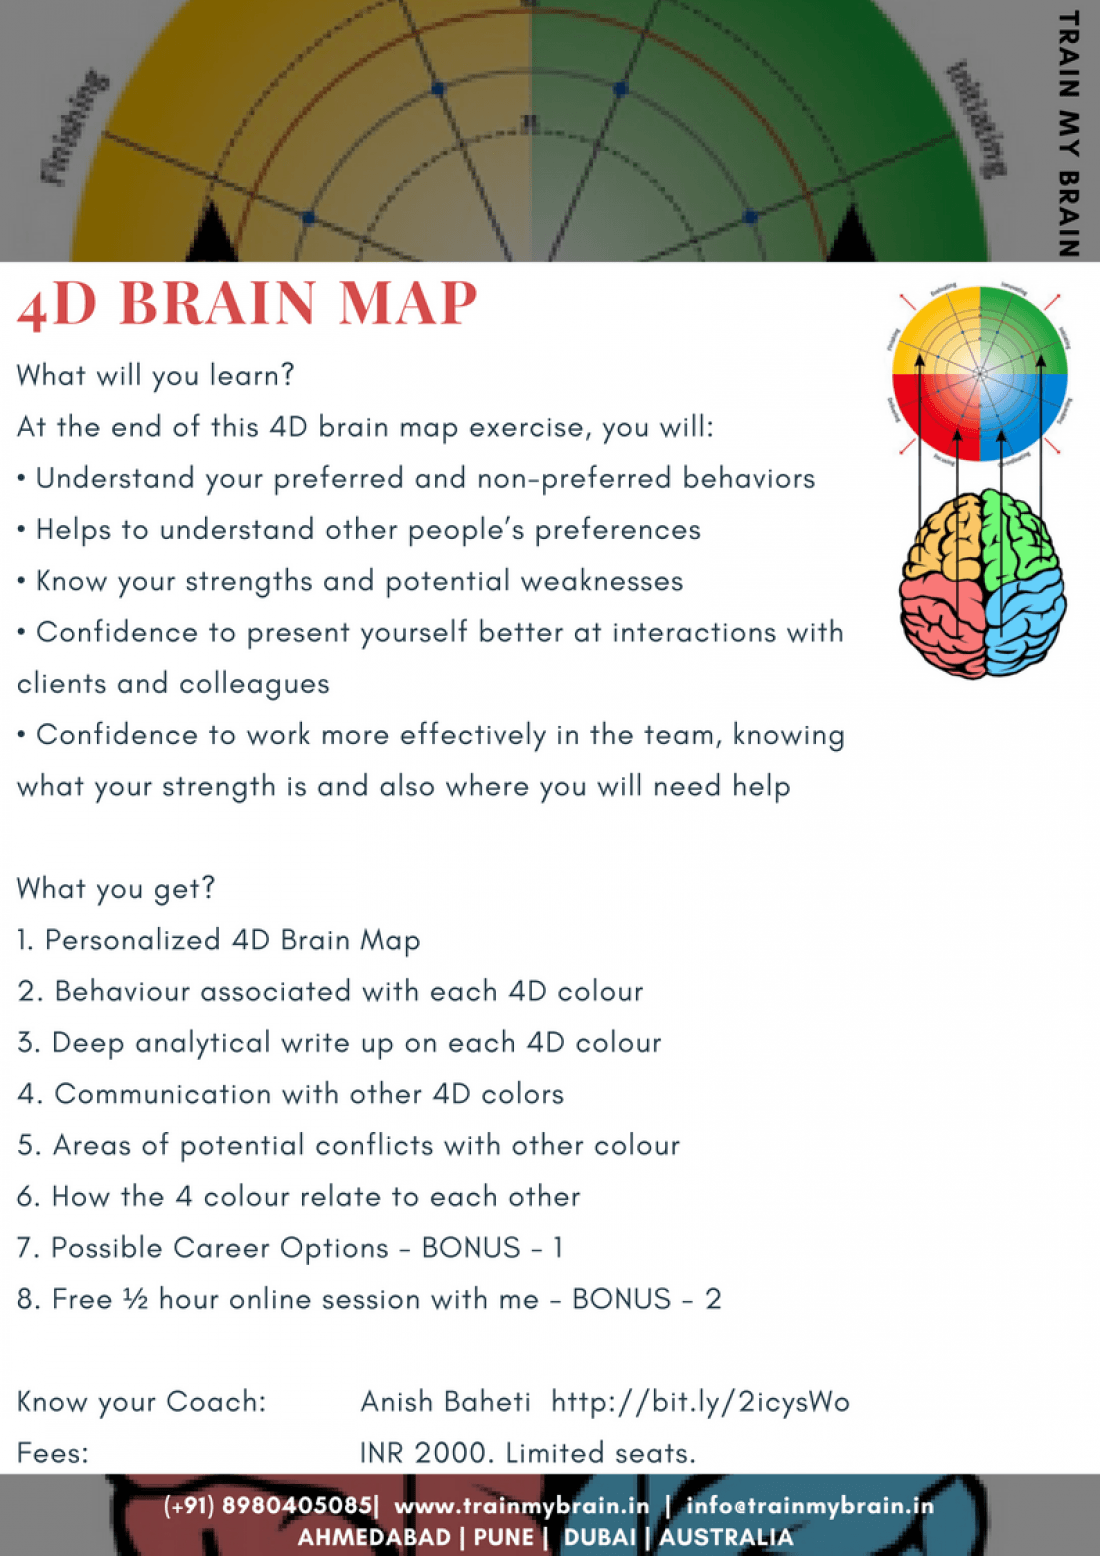 Get your 4D Brain Map